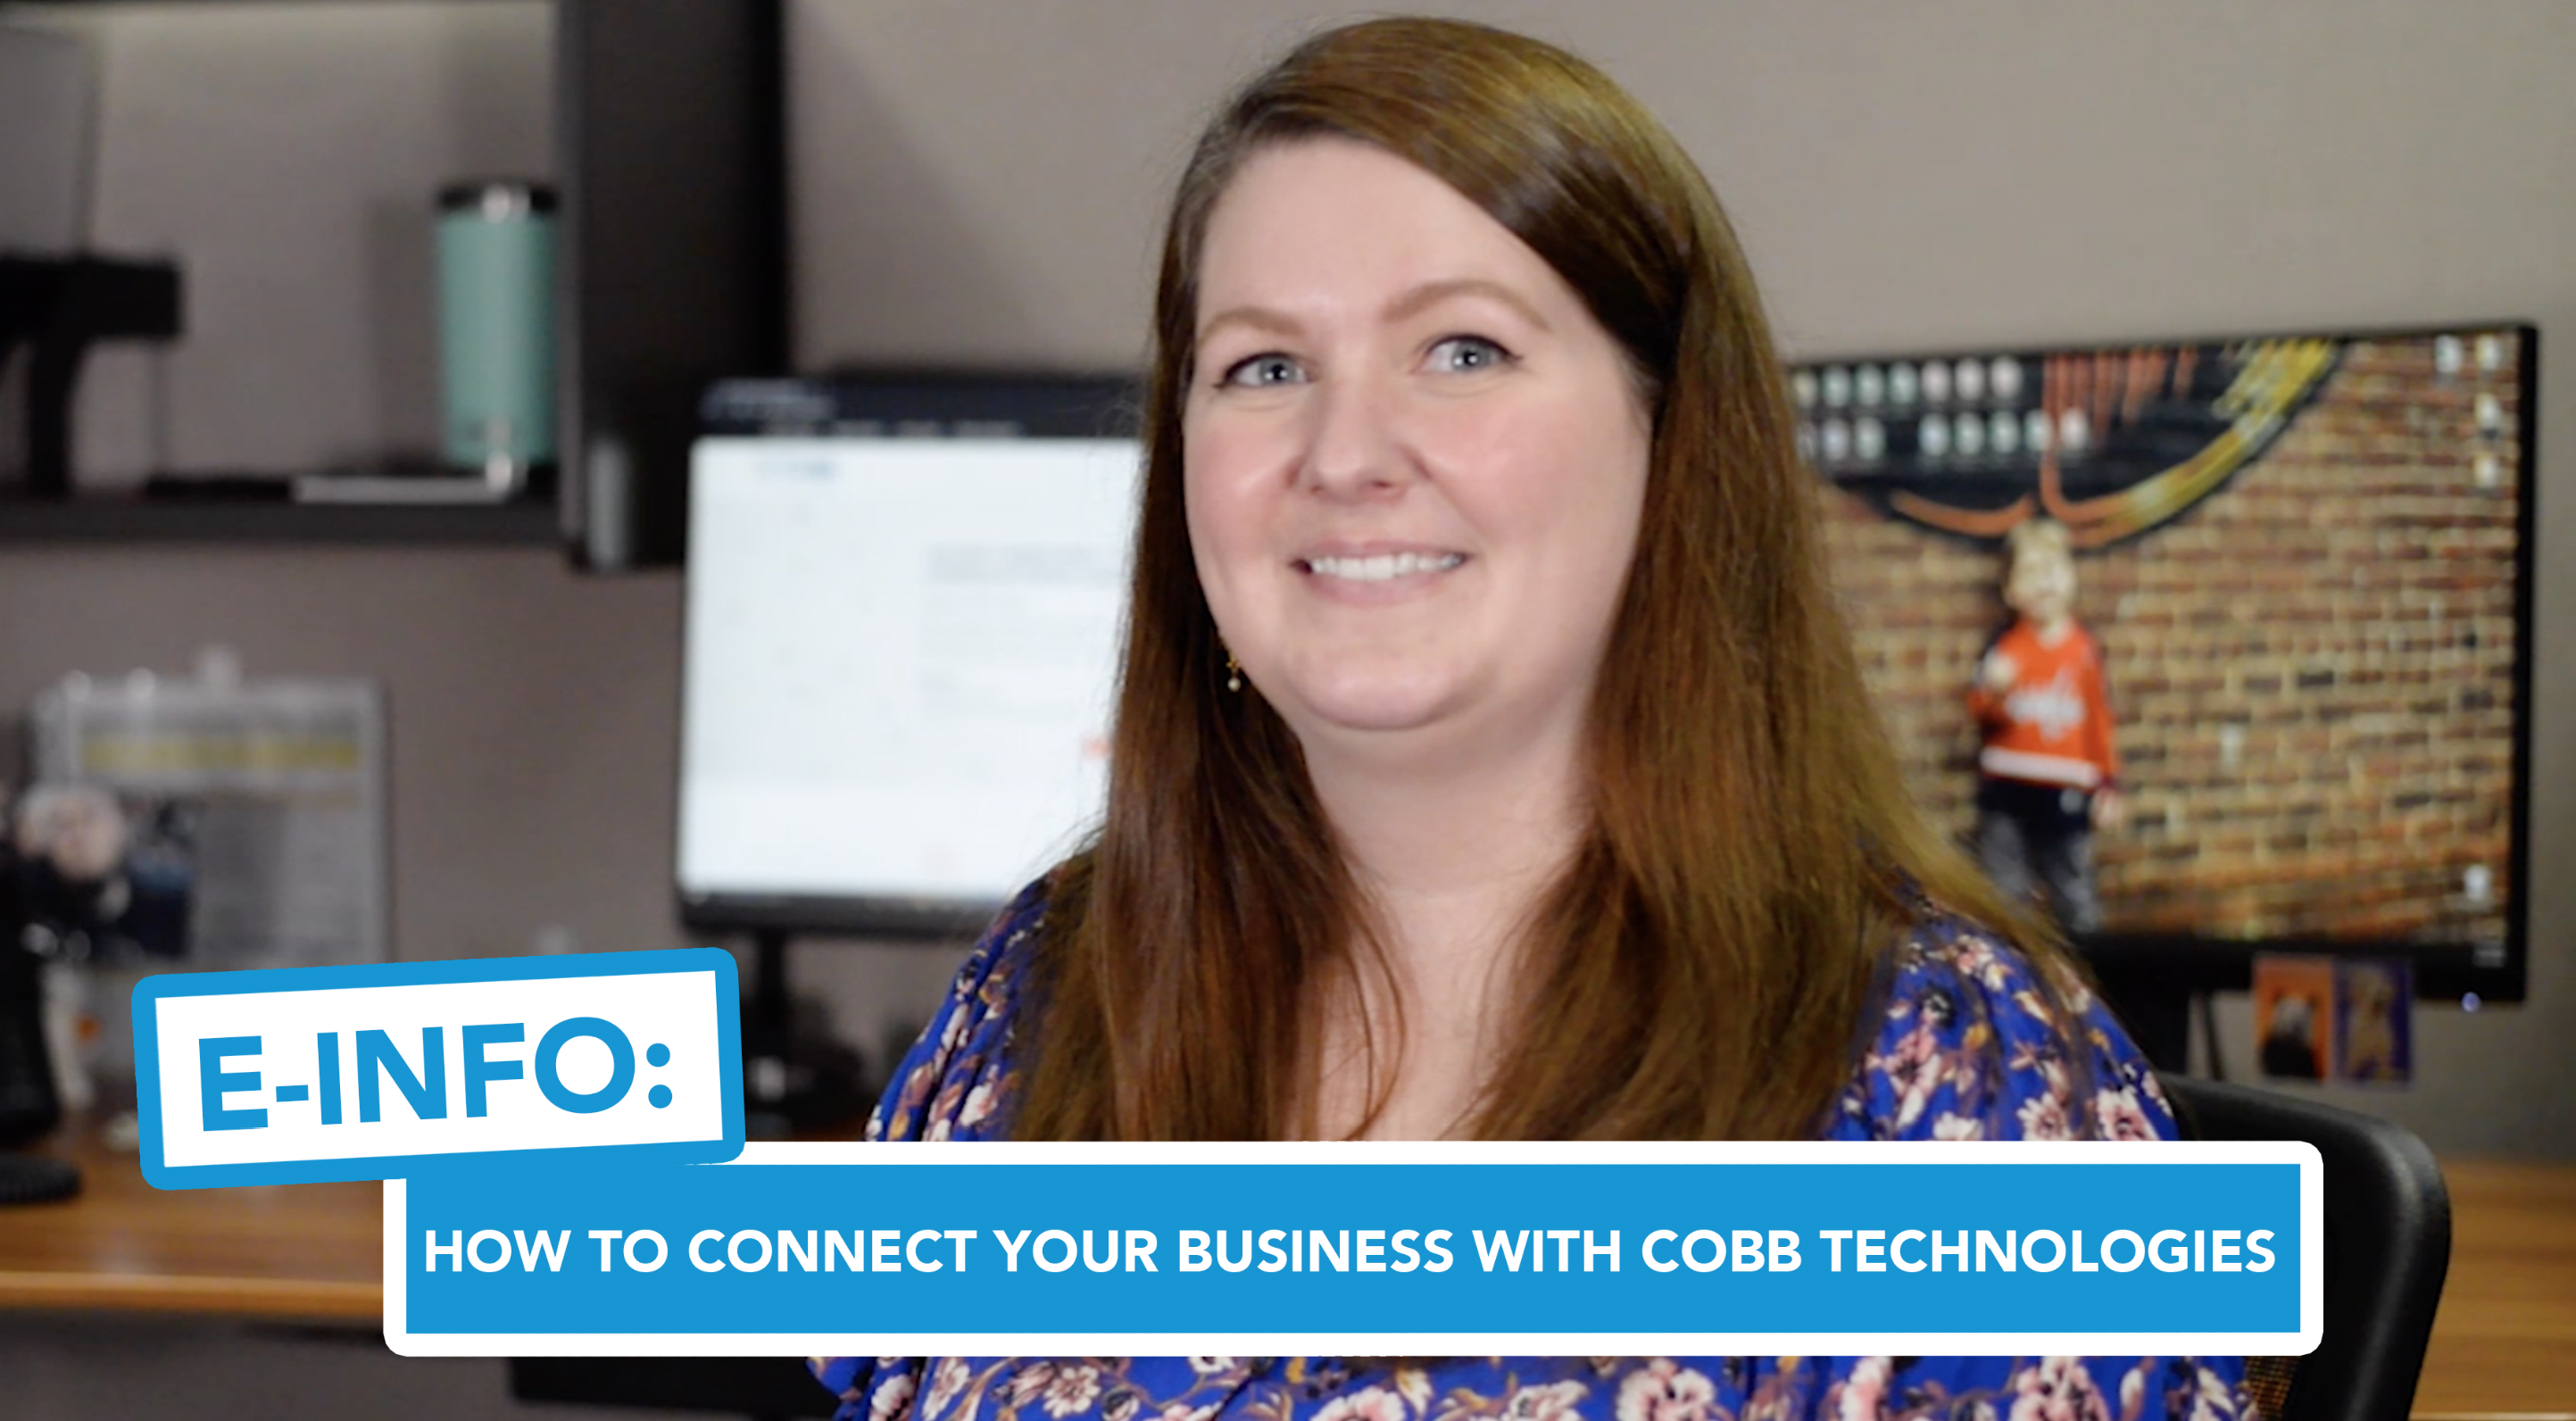 E-Info: How to Connect Your Business With Cobb Technologies Online